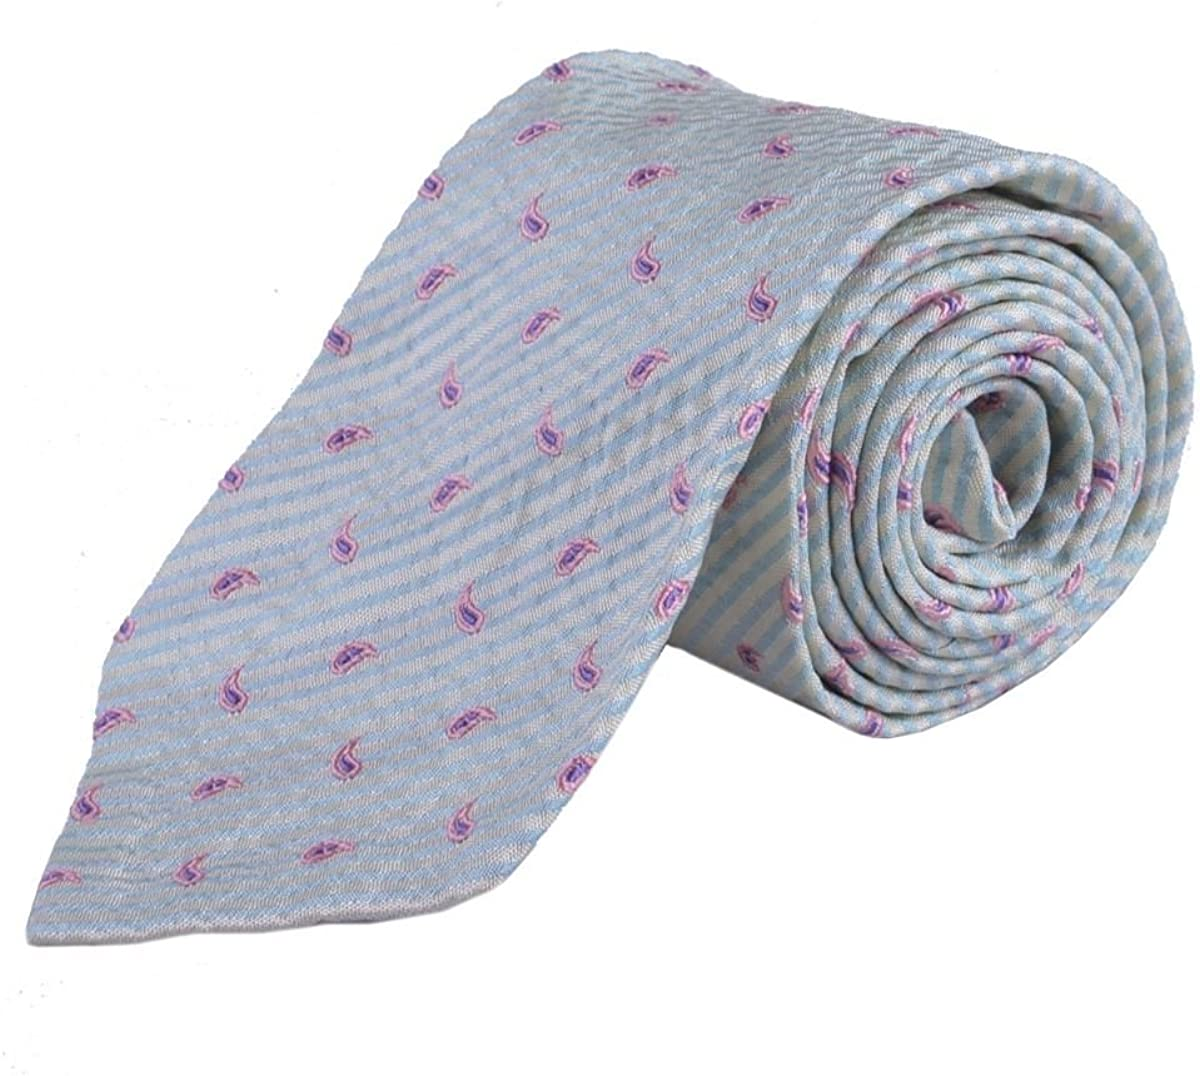 Holliday Brown Men's 100% Silk Inventory cleanup selling sale Hand Now free shipping Multi-Color Made Neckwear